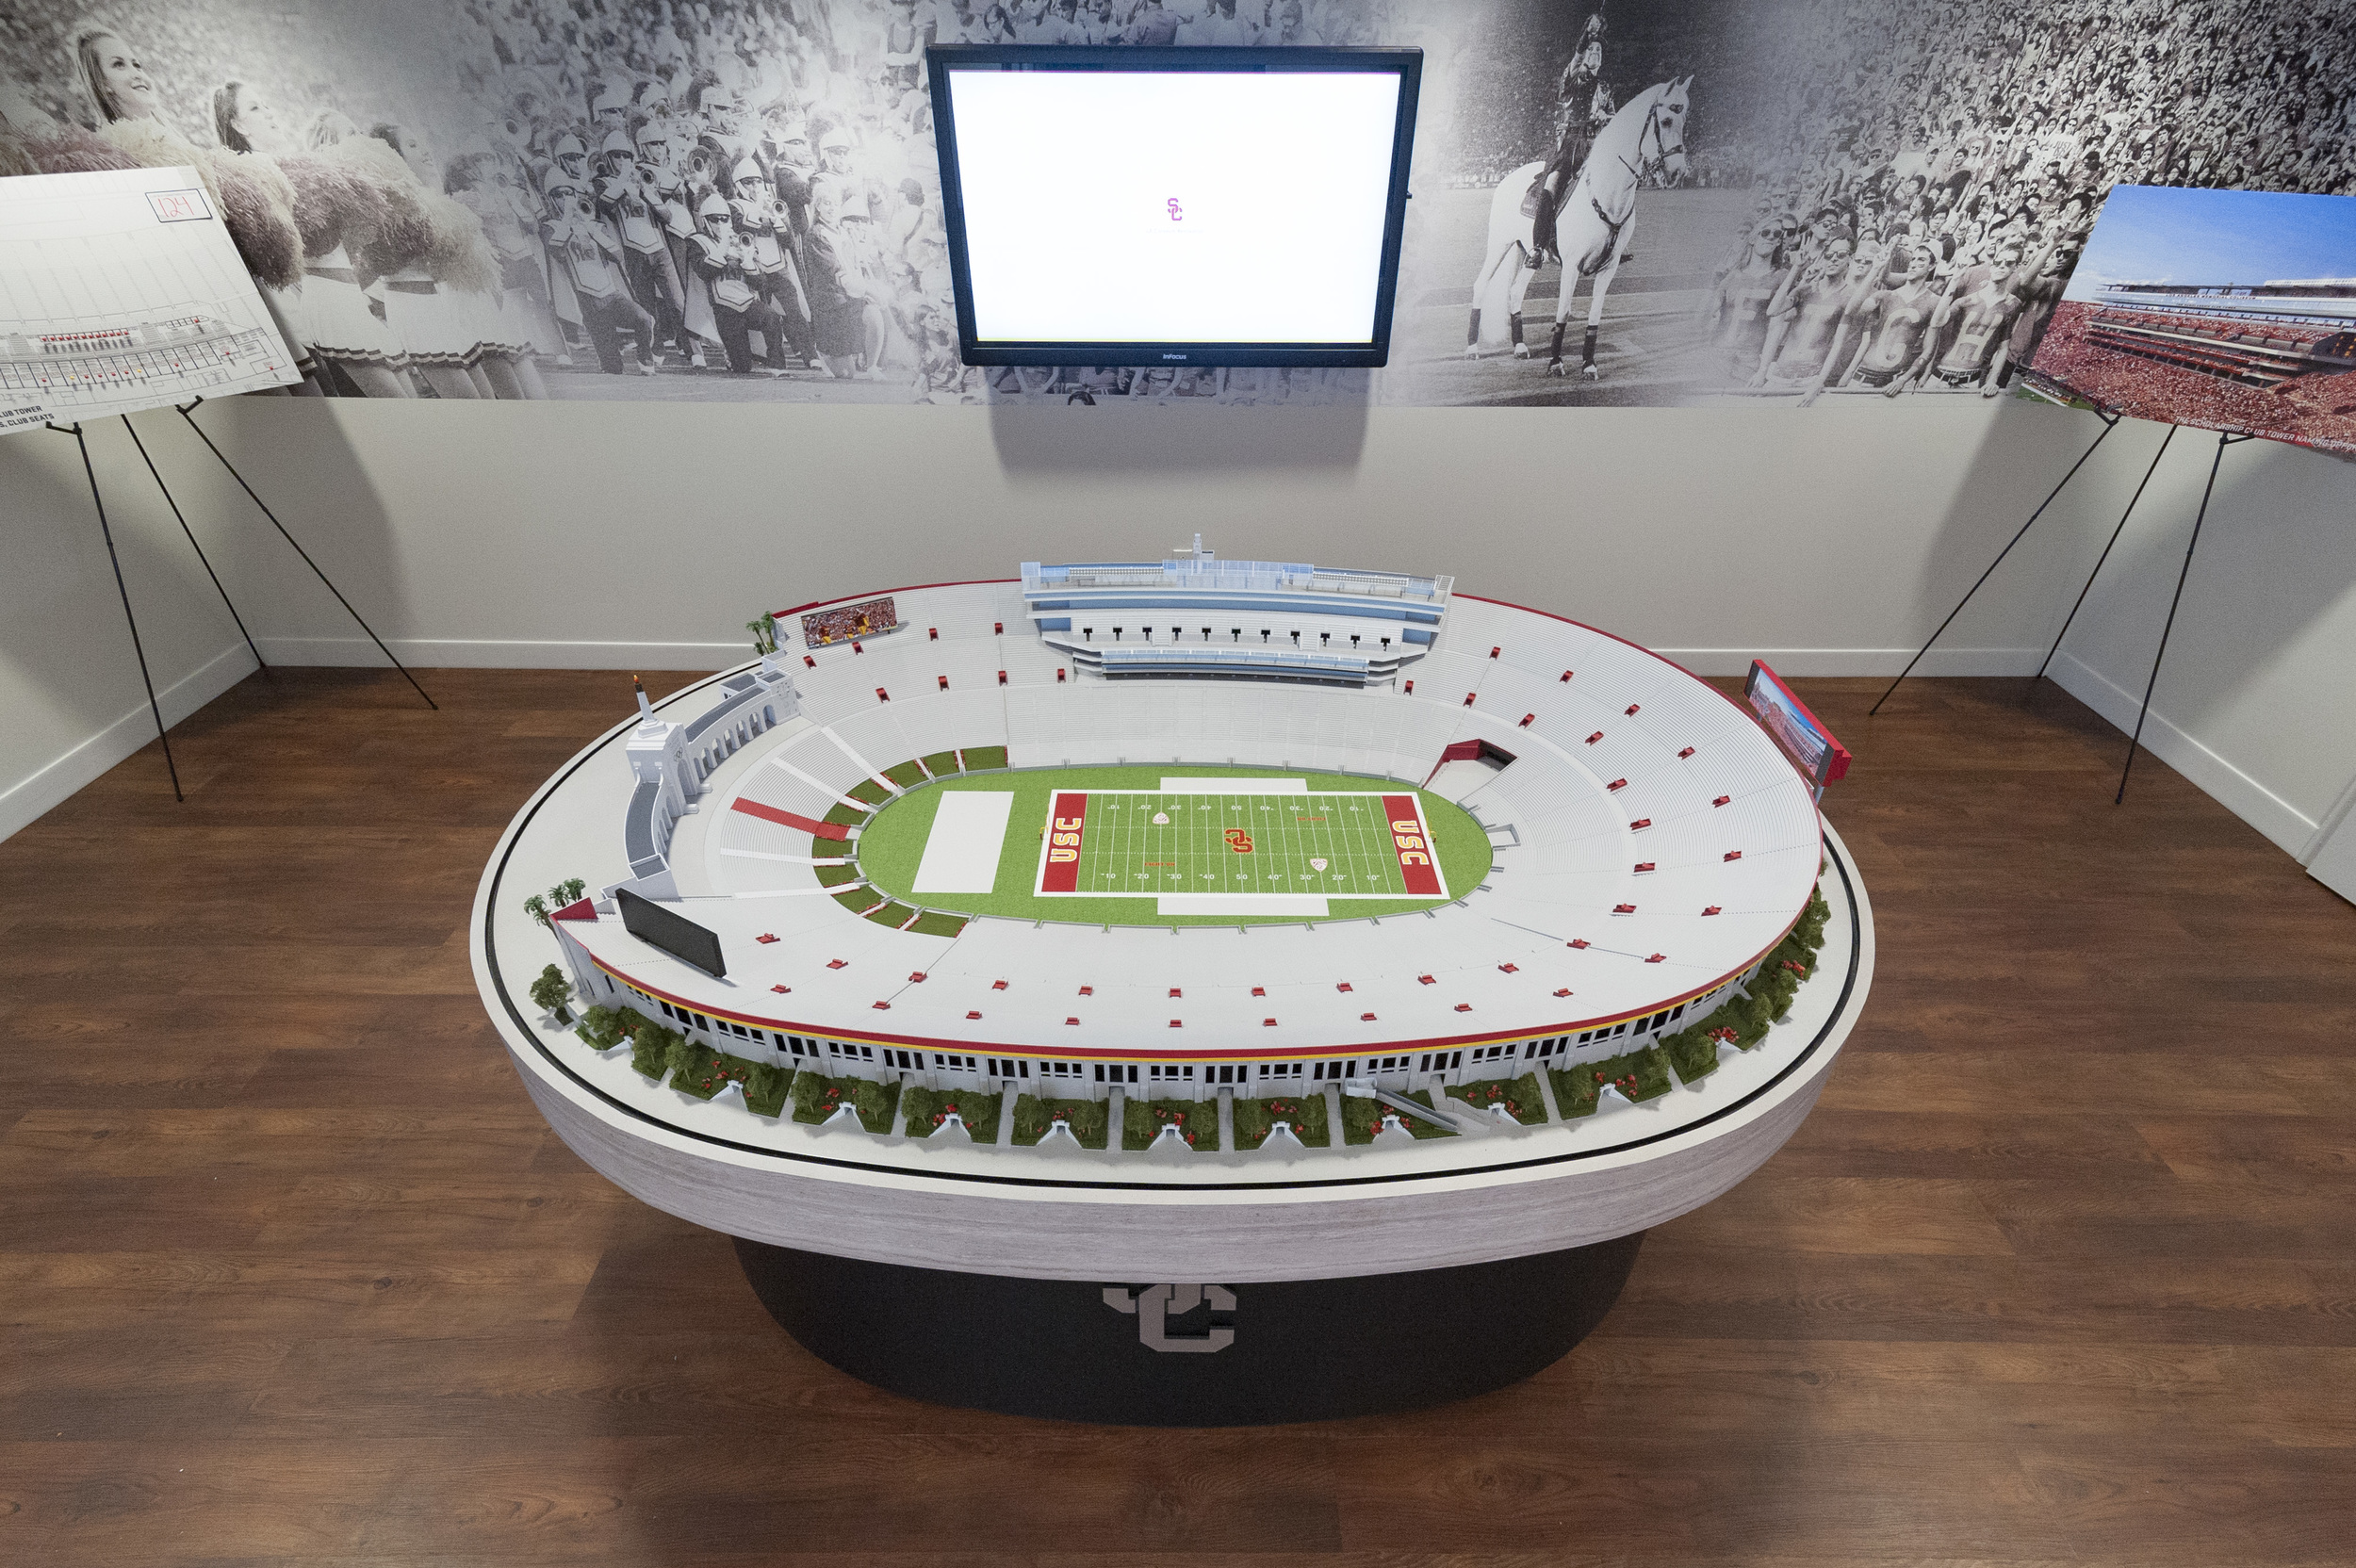 LA Memorial Coliseum Architectural Model (1:160) Scaled